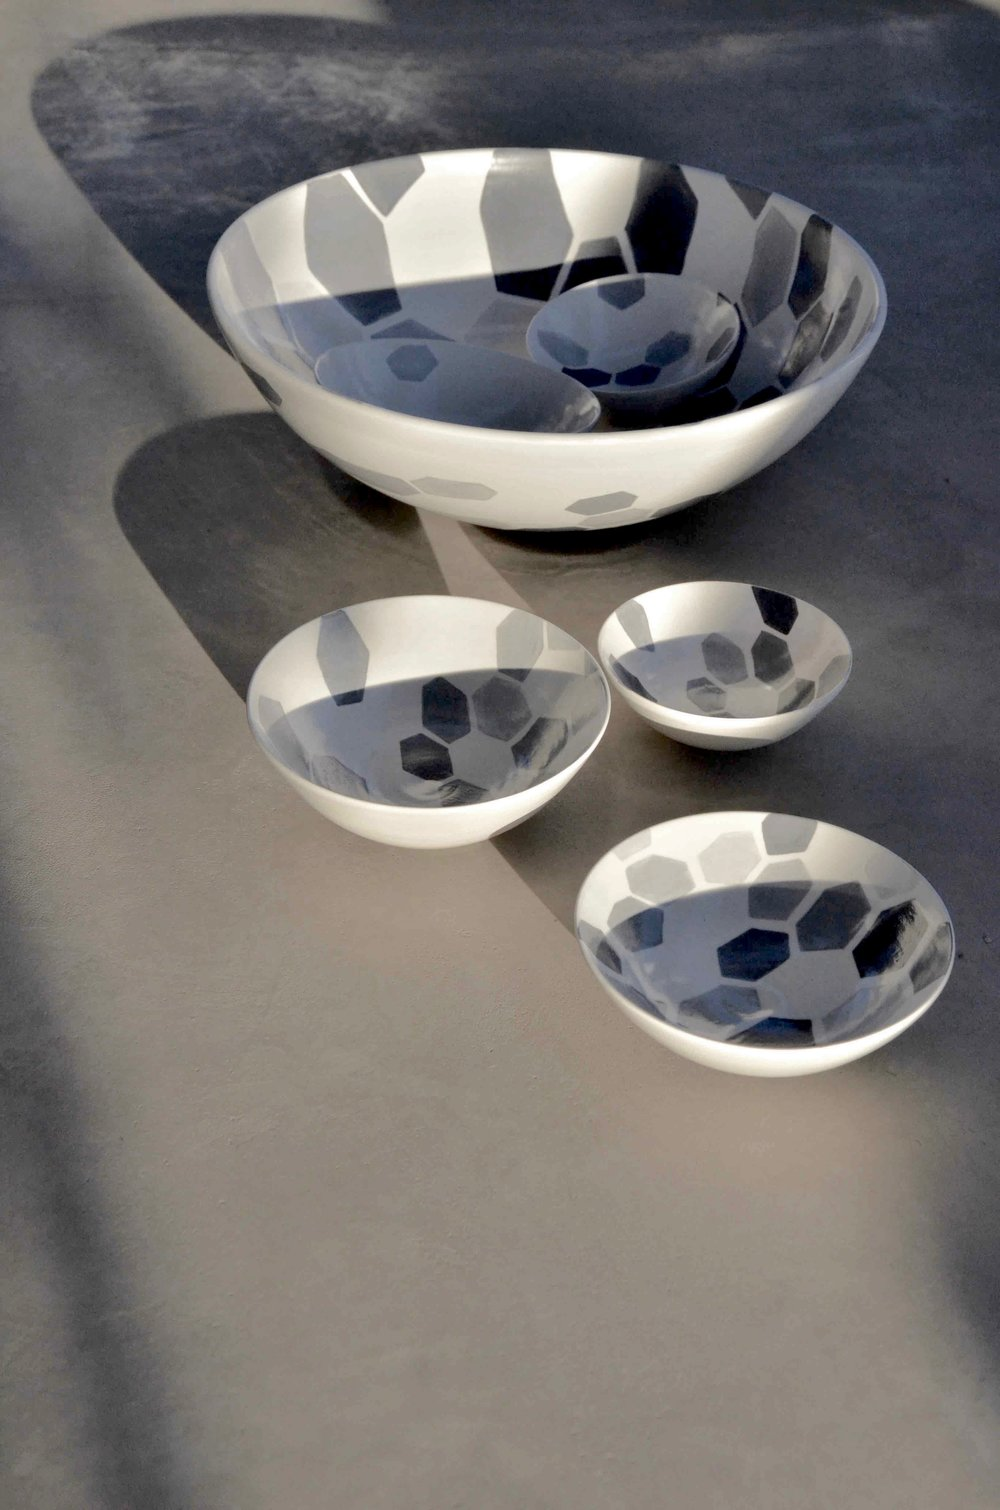 white ceramic body heavy: grey hexagon perspective bowl 16x38 (350E). white ceramic body light bowl 7x20cm (60E) 6x15cm (40E)